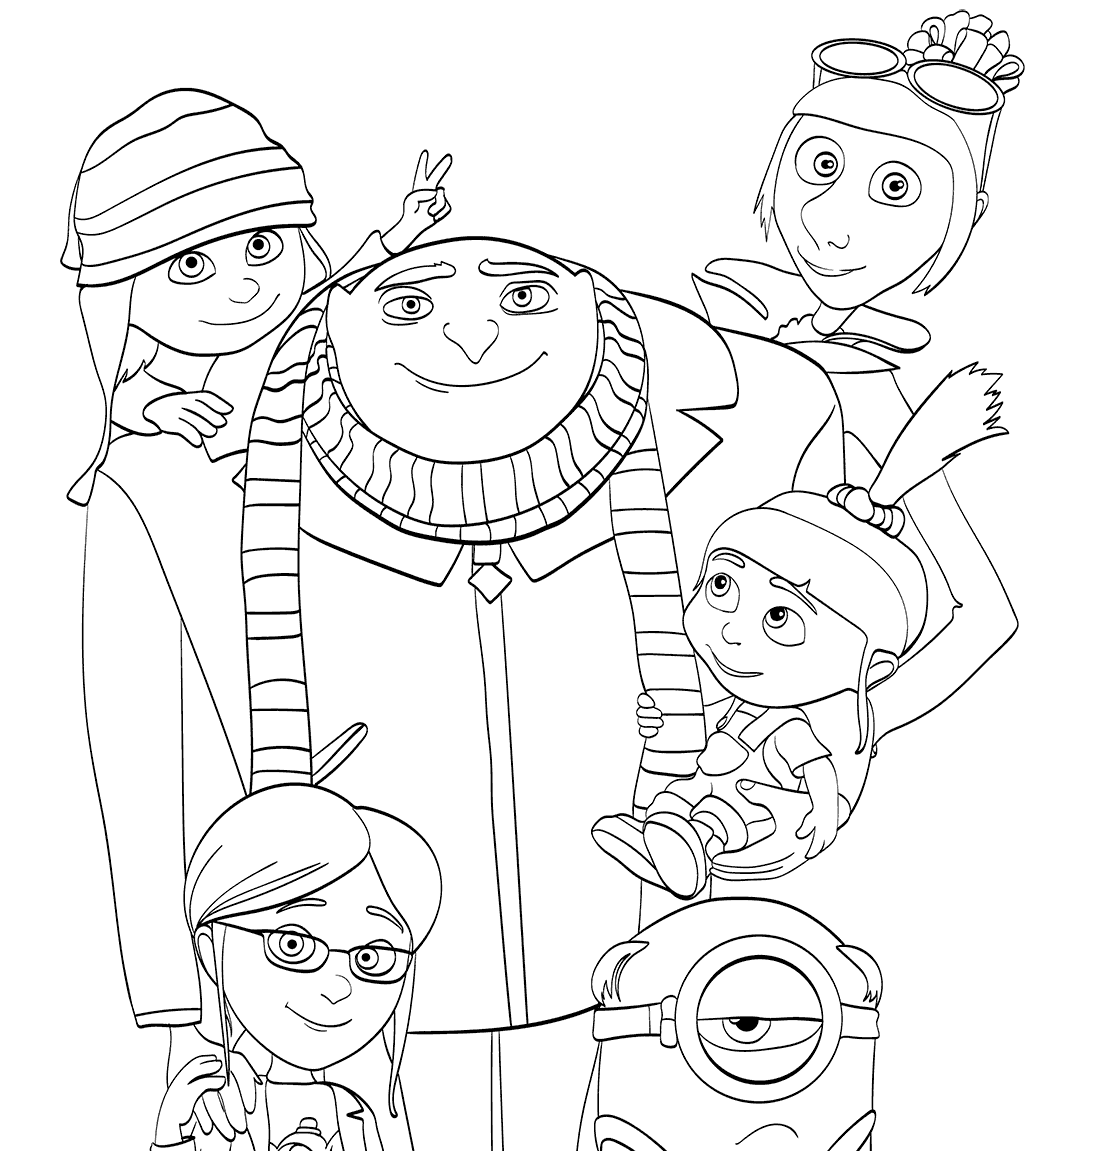 free printable despicable me coloring pages minion from despicable me 3 coloring page free printable coloring me pages free printable despicable